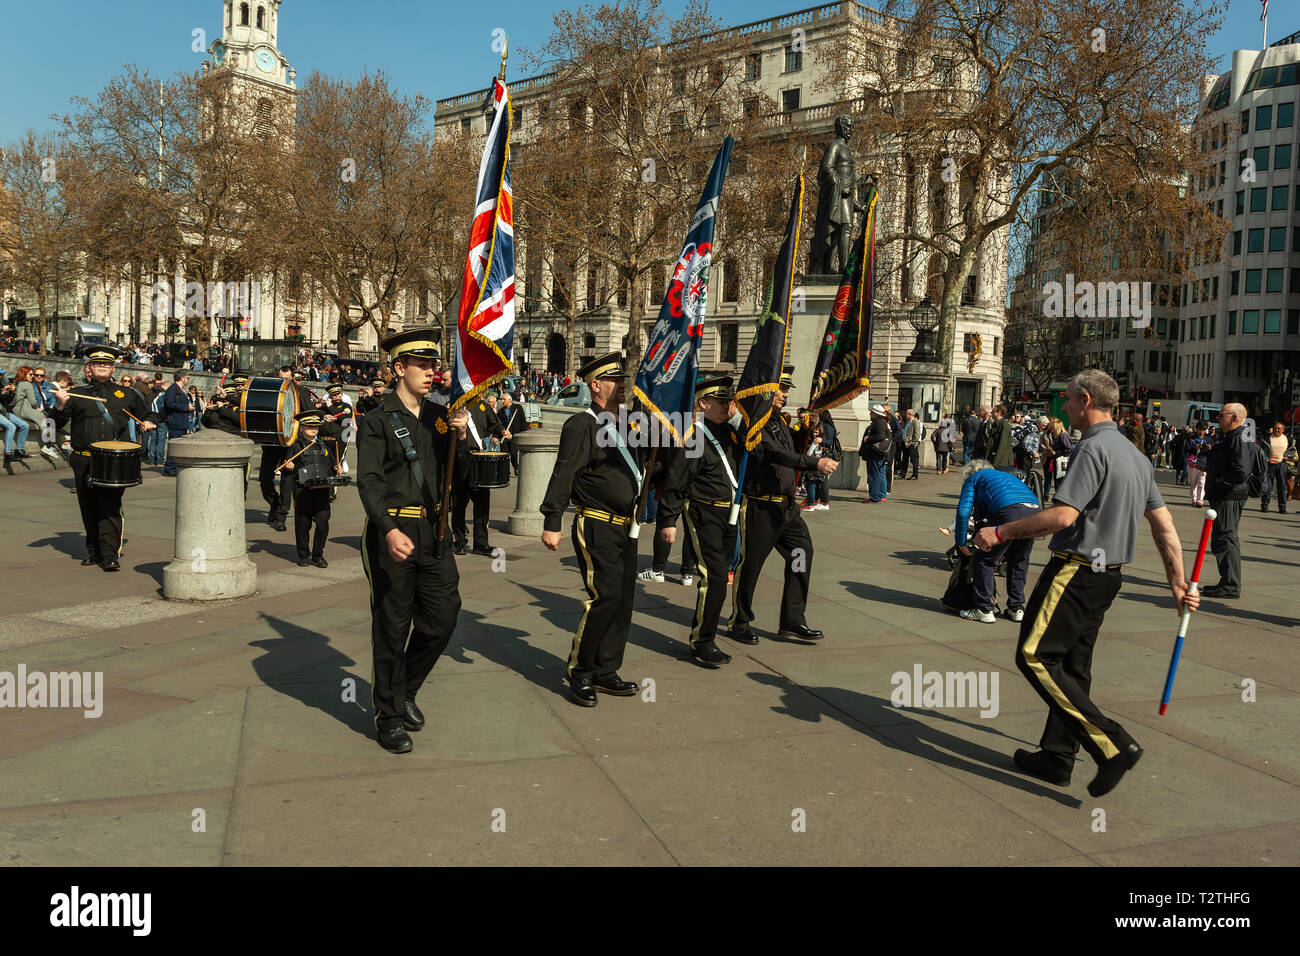 Brexit means Brexit march (London, March 2019) - Stock Image